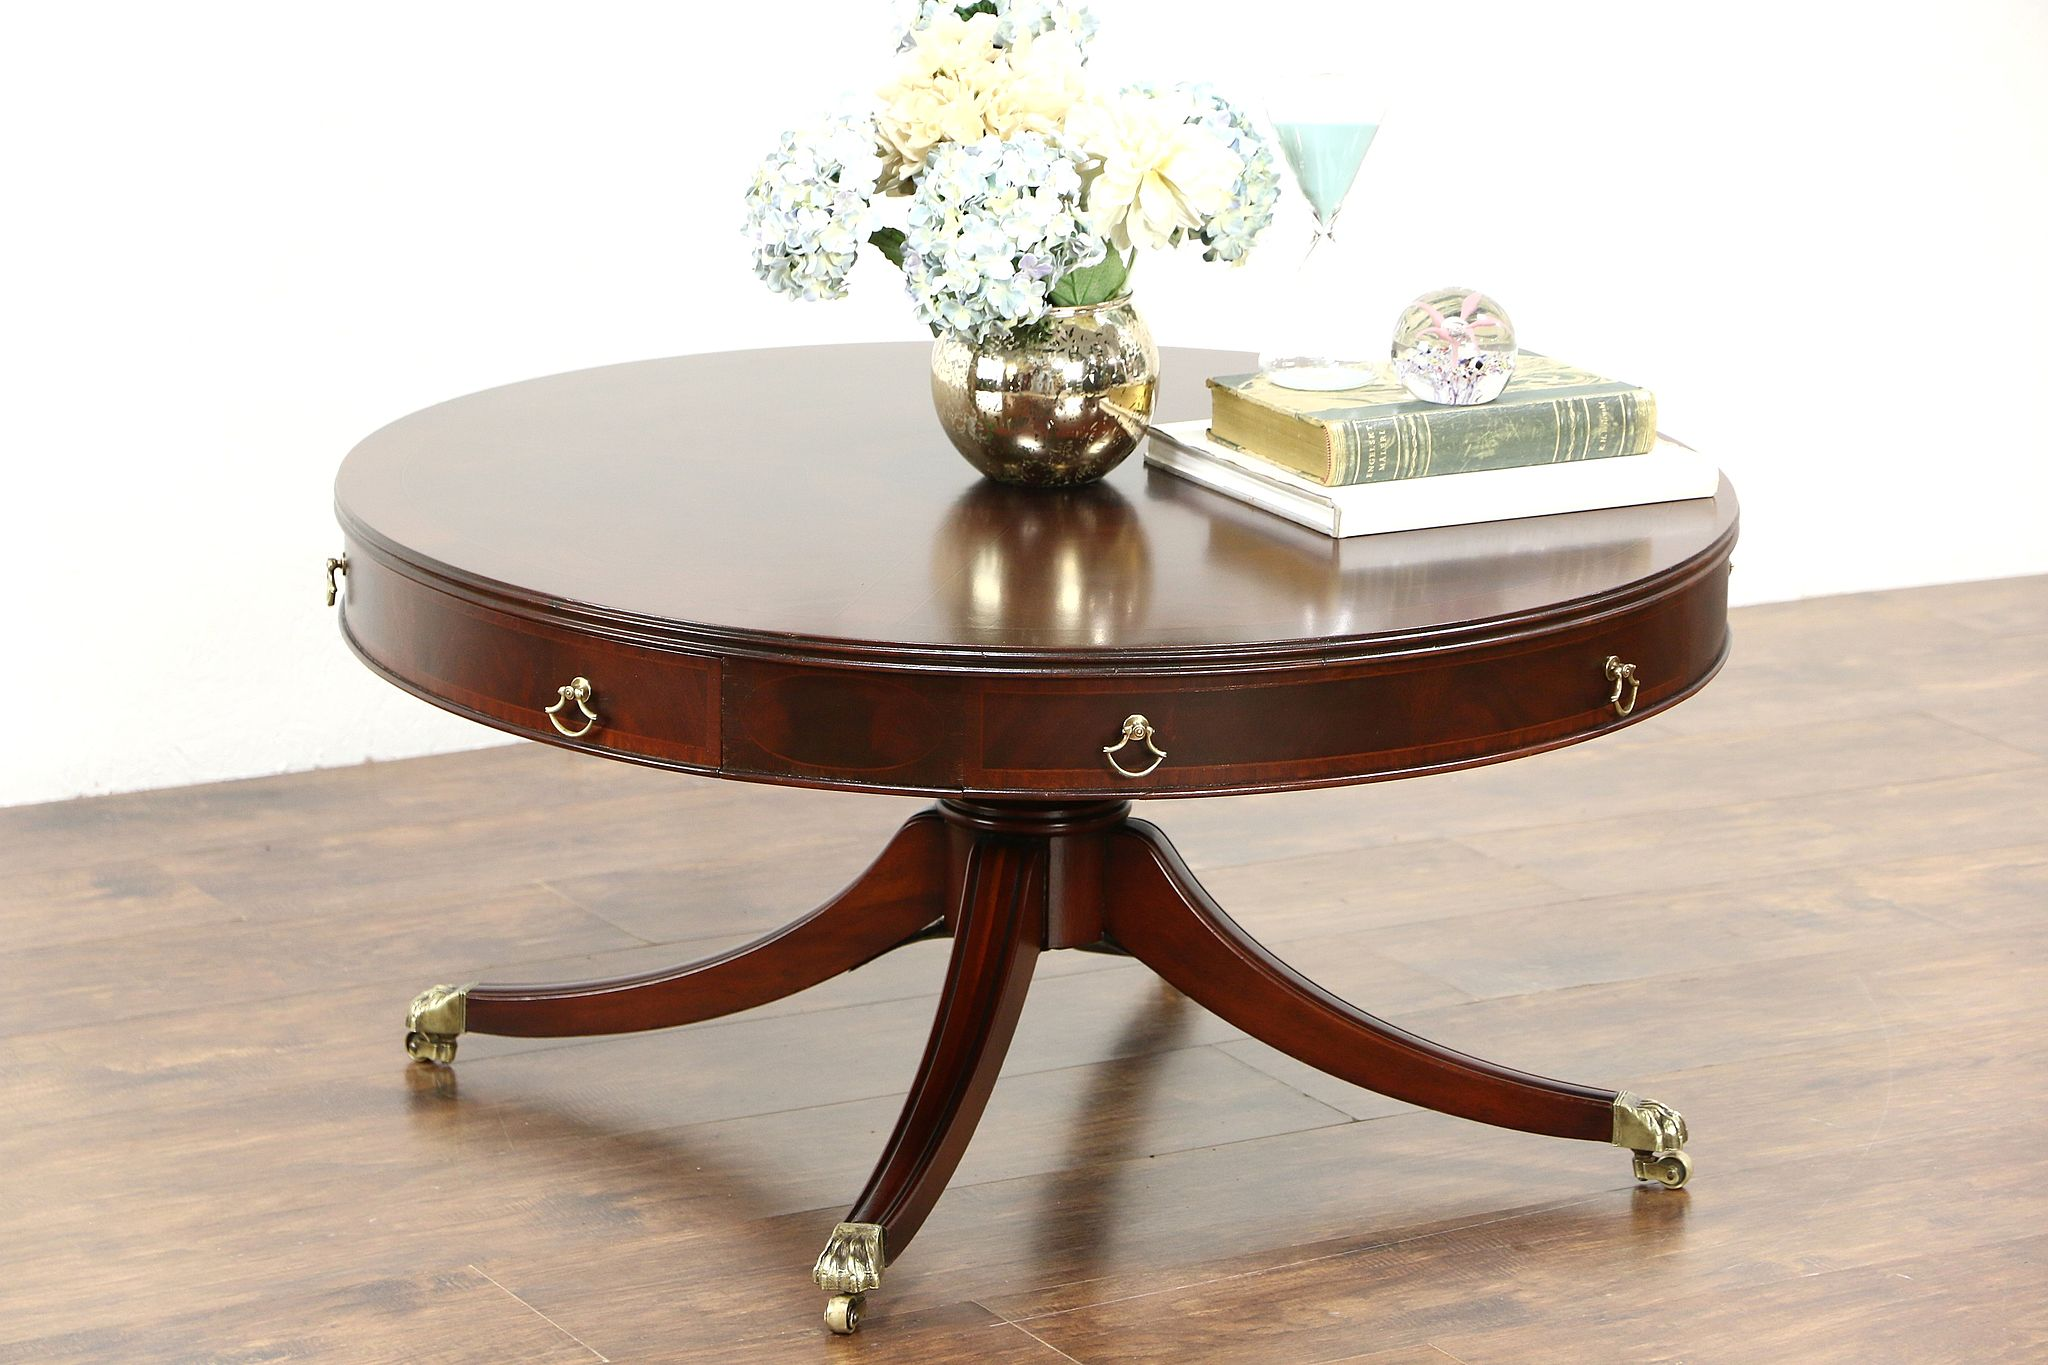 Traditional Drum Style Pedestal Coffee Table 1950 s Vintage